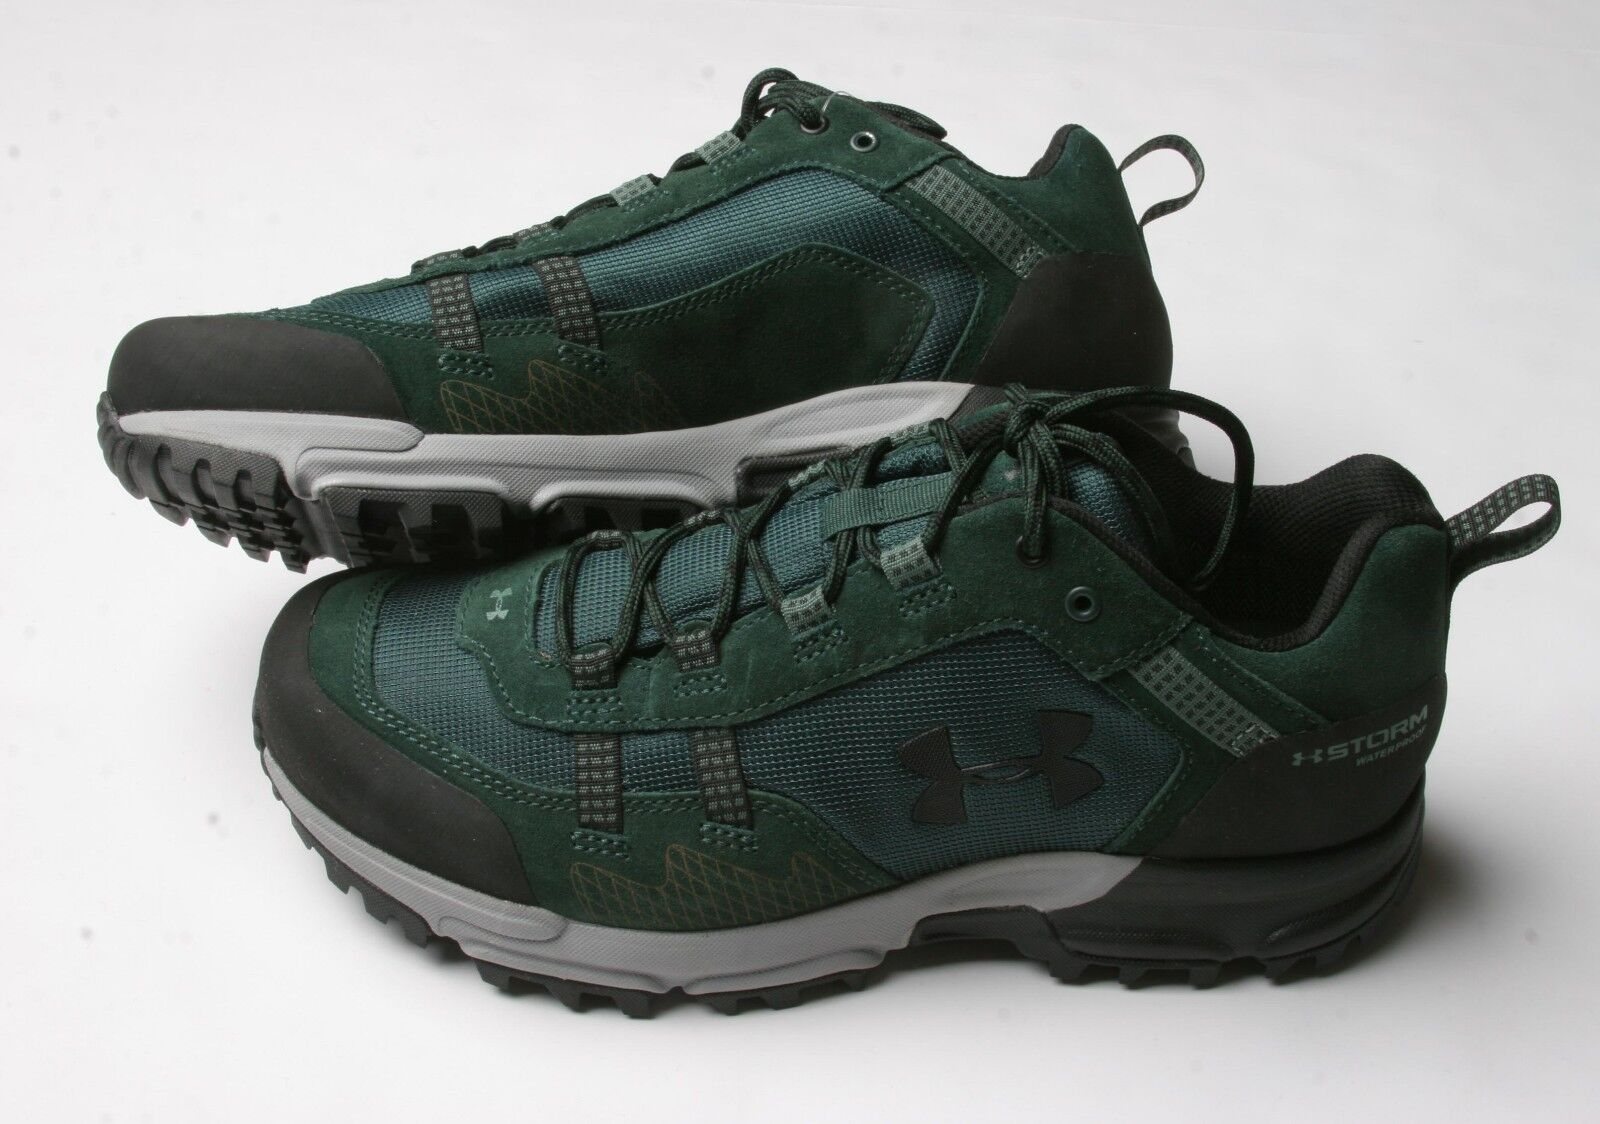 Under Armour Canyon Low Waterproof schuhe (9) Grün